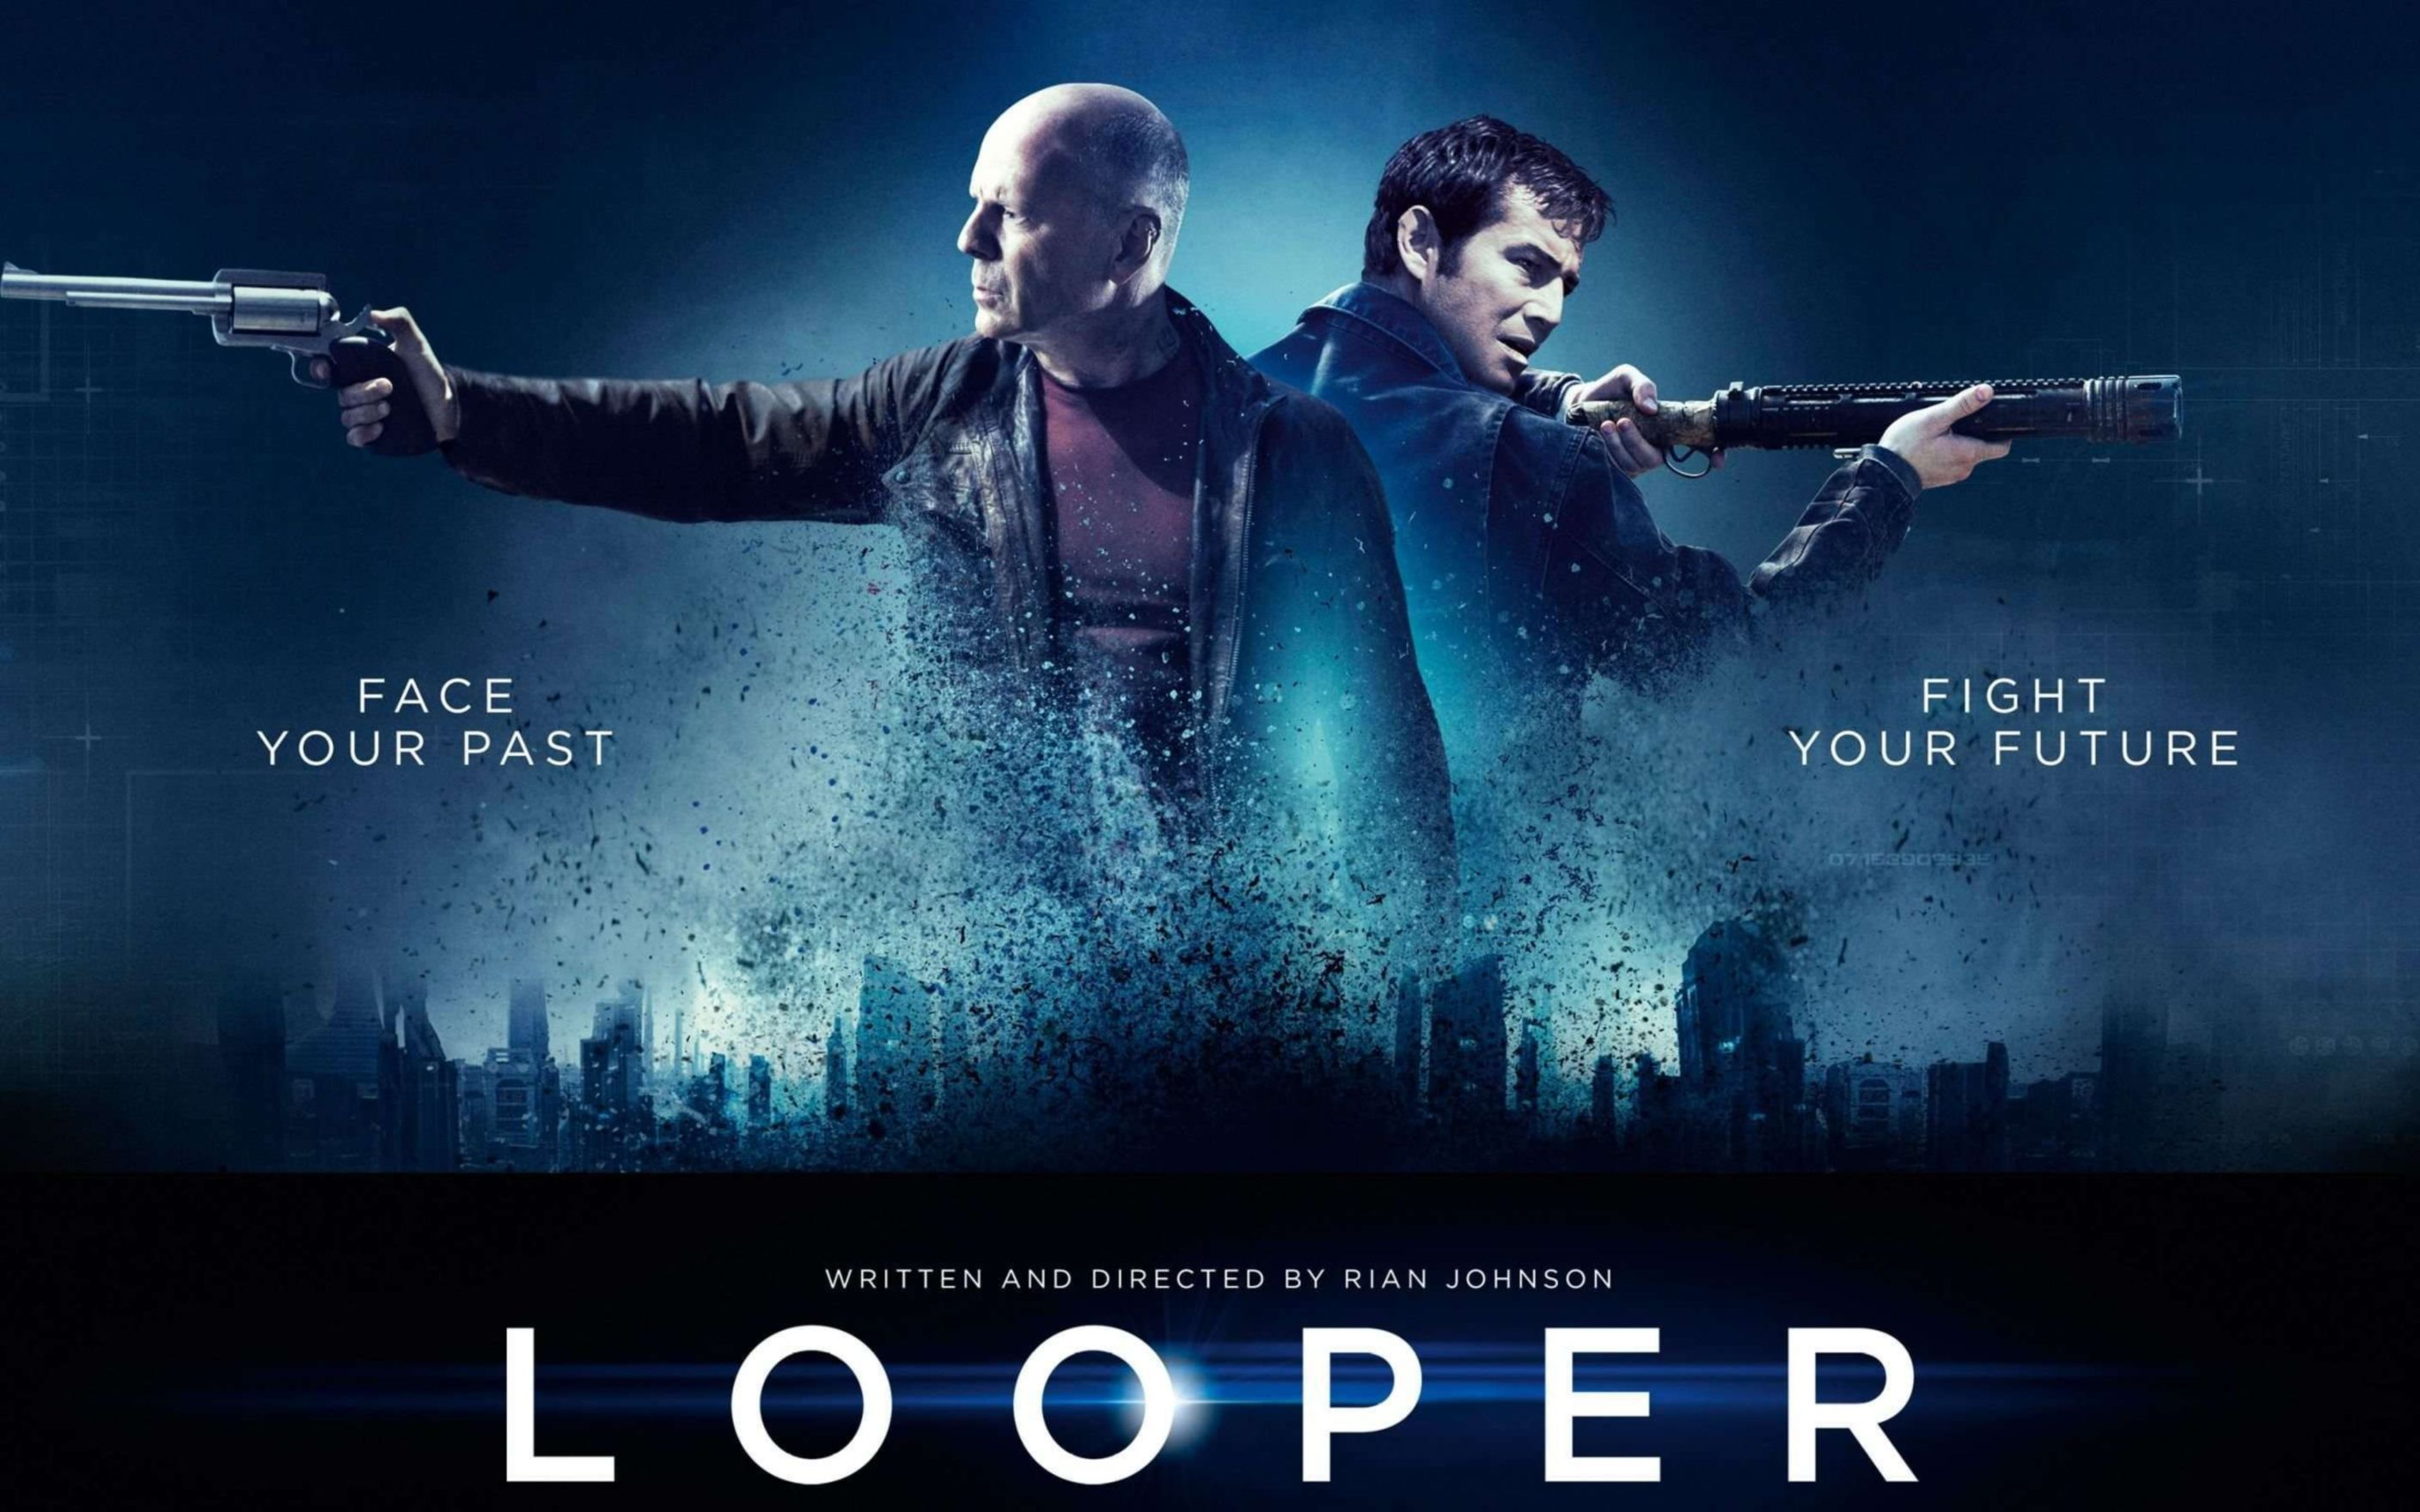 Download free HD Looper Movie Widescreen Wallpaper, image